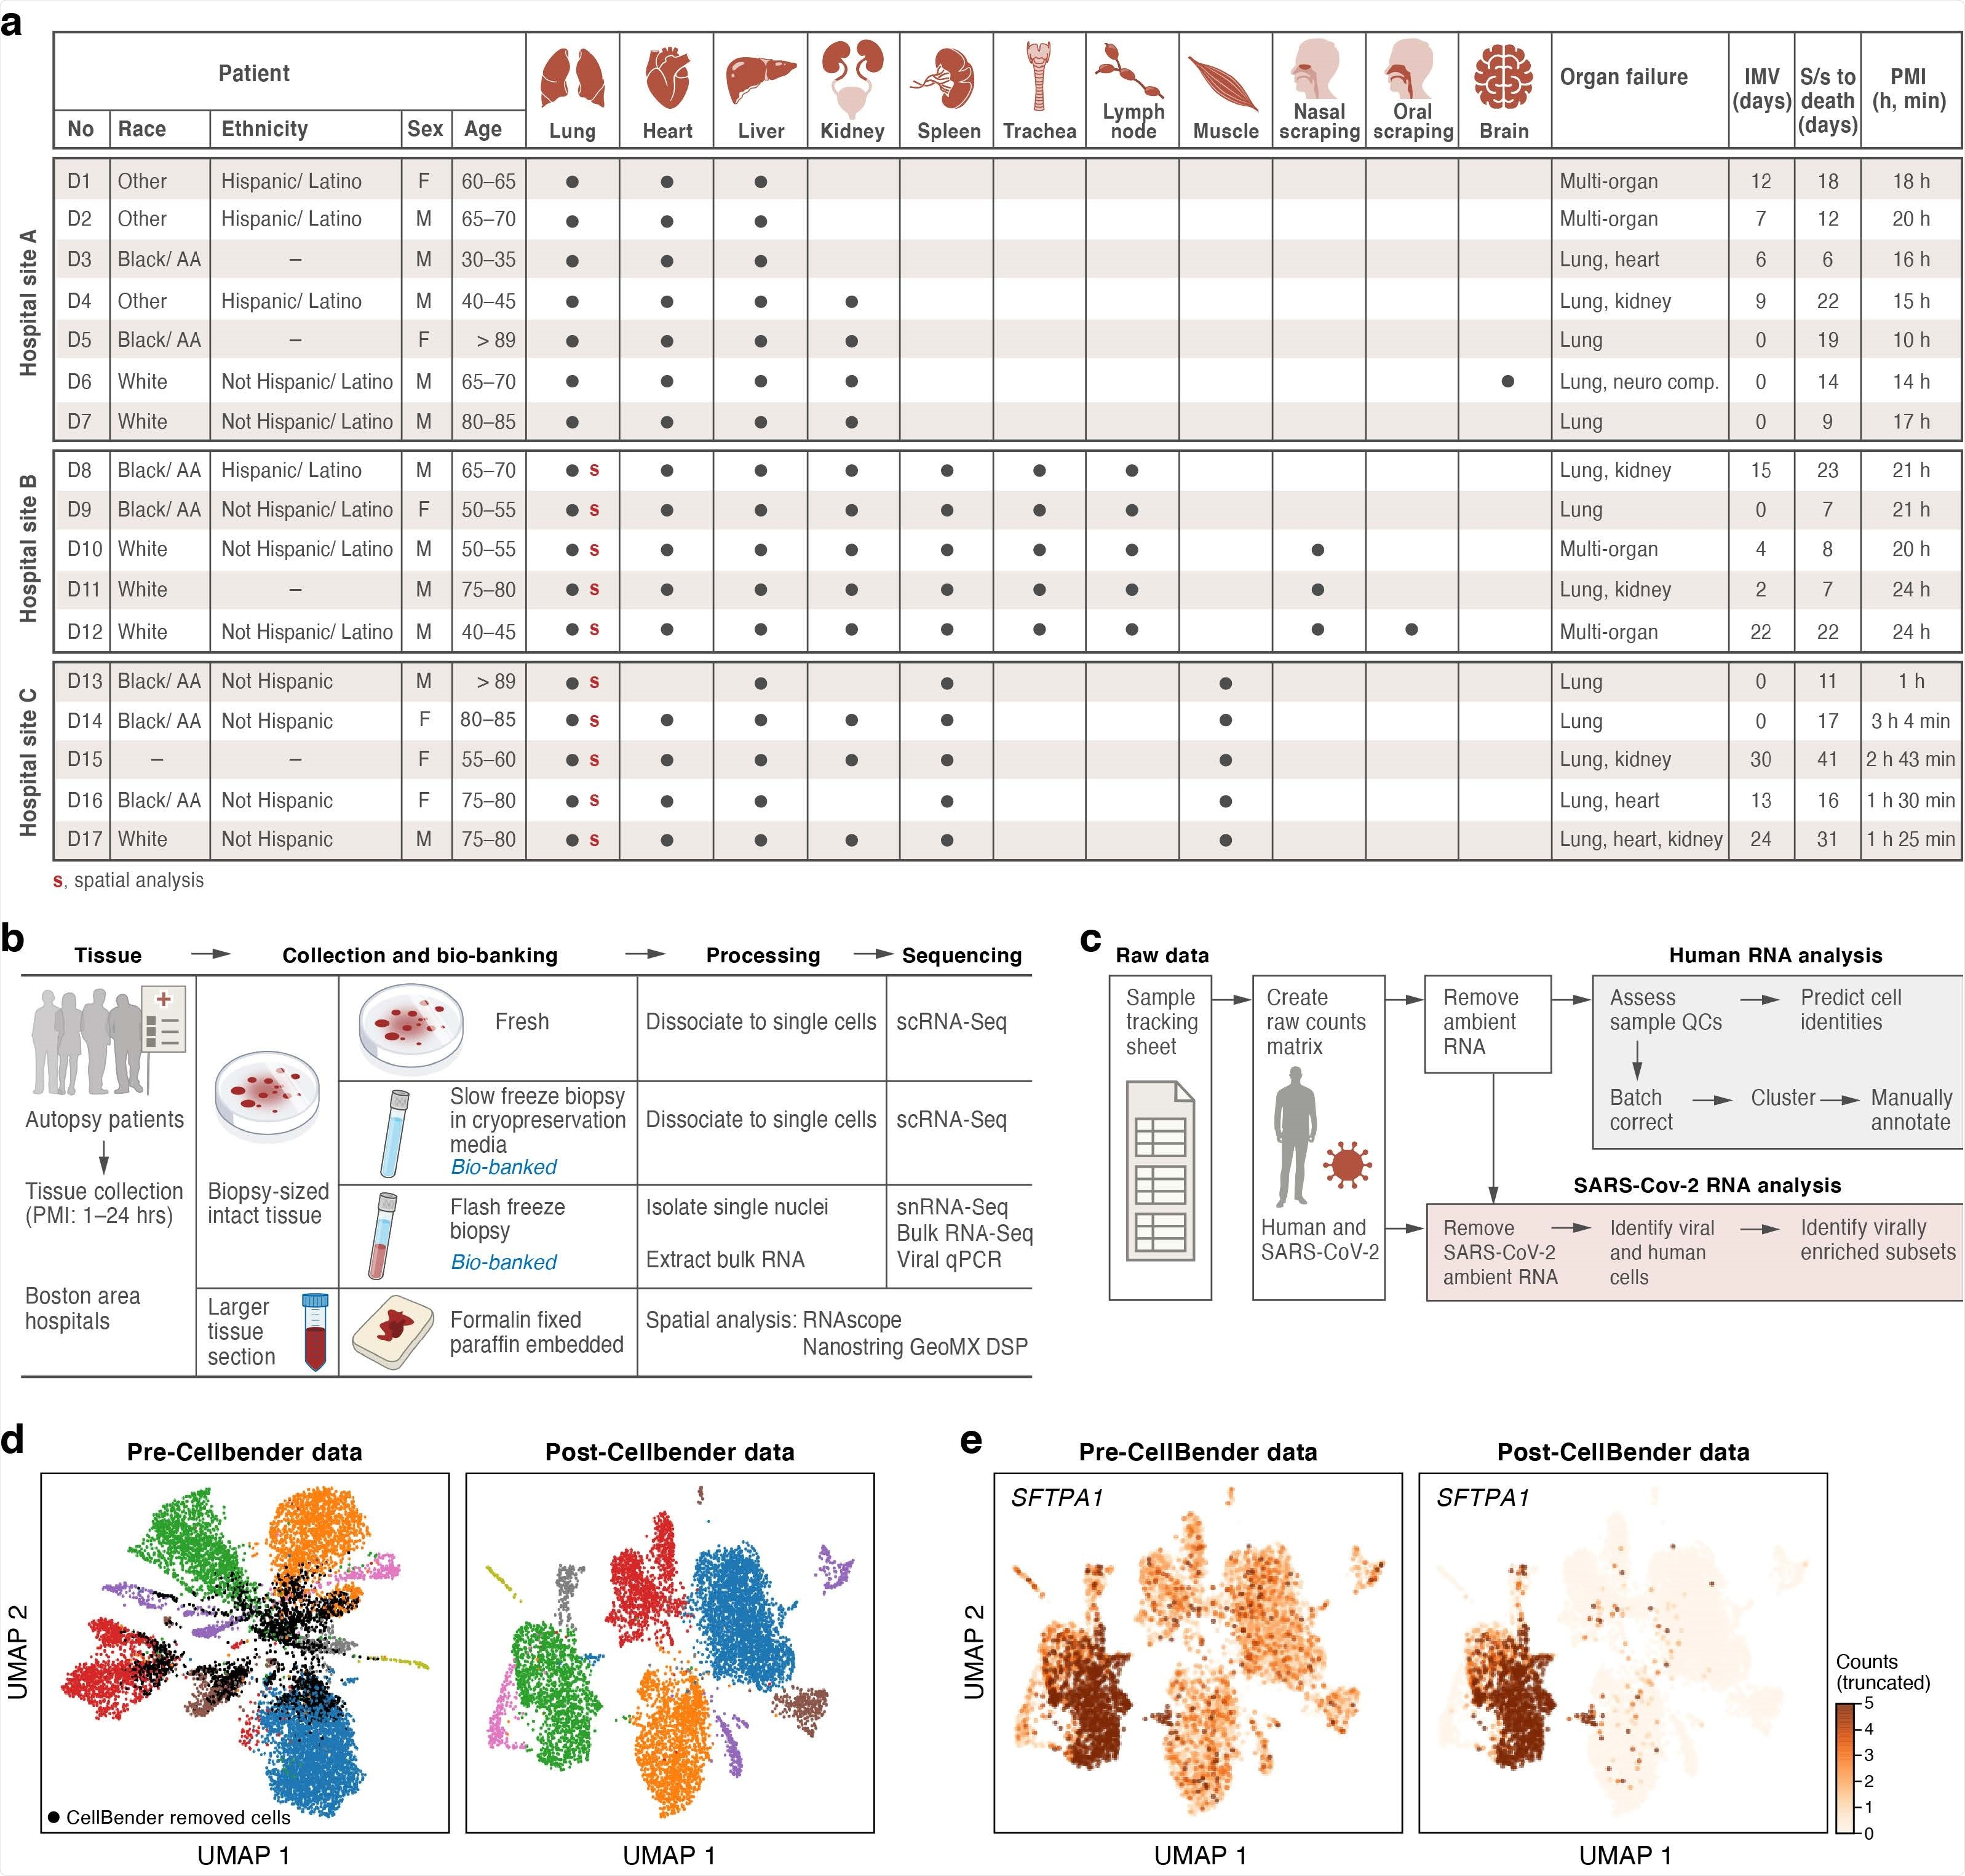 A COVID-19 autopsy cohort for a single cell and spatial atlas a. Cohort overview. IMV: intermittent mandatory ventilation days, S/s: time from symptom onset to death in days; PMI: post-mortem interval. Red bold s: donors for which we collected spatial profiles in the lung. b. Sample processing pipeline overview. c. sc/snRNA-Seq analysis pipeline overview. d,e. CellBender 'remove-background' improves cell clustering and expression specificity by removing ambient RNA and empty (non-cell) droplets. UMAP plot of sc/snRNASeq profiles (dots) either before (left) or after (right) CellBender processing, colored by clusters and by doublet status (black) (d), or by expression of the surfactant protein SFTPA1 (e). Color scale in e is linear and truncated at 5 counts to visualize small counts.